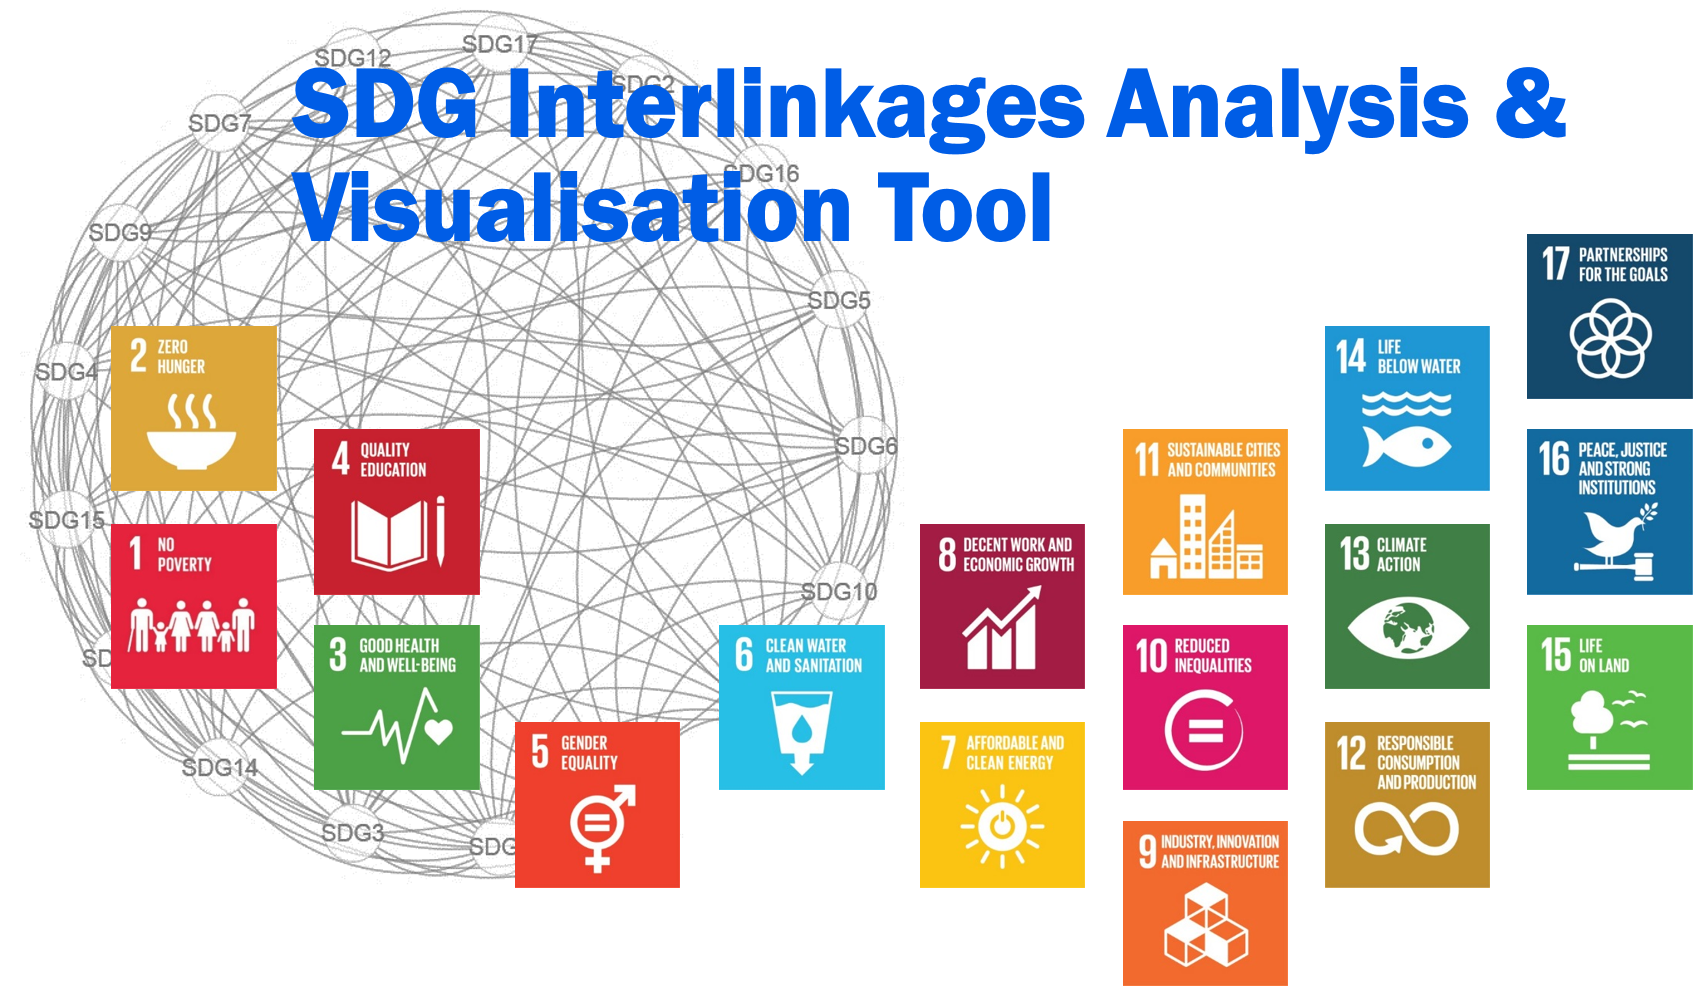 SDG Interlinkages Analysis & Visualisation Tool (V2.0)